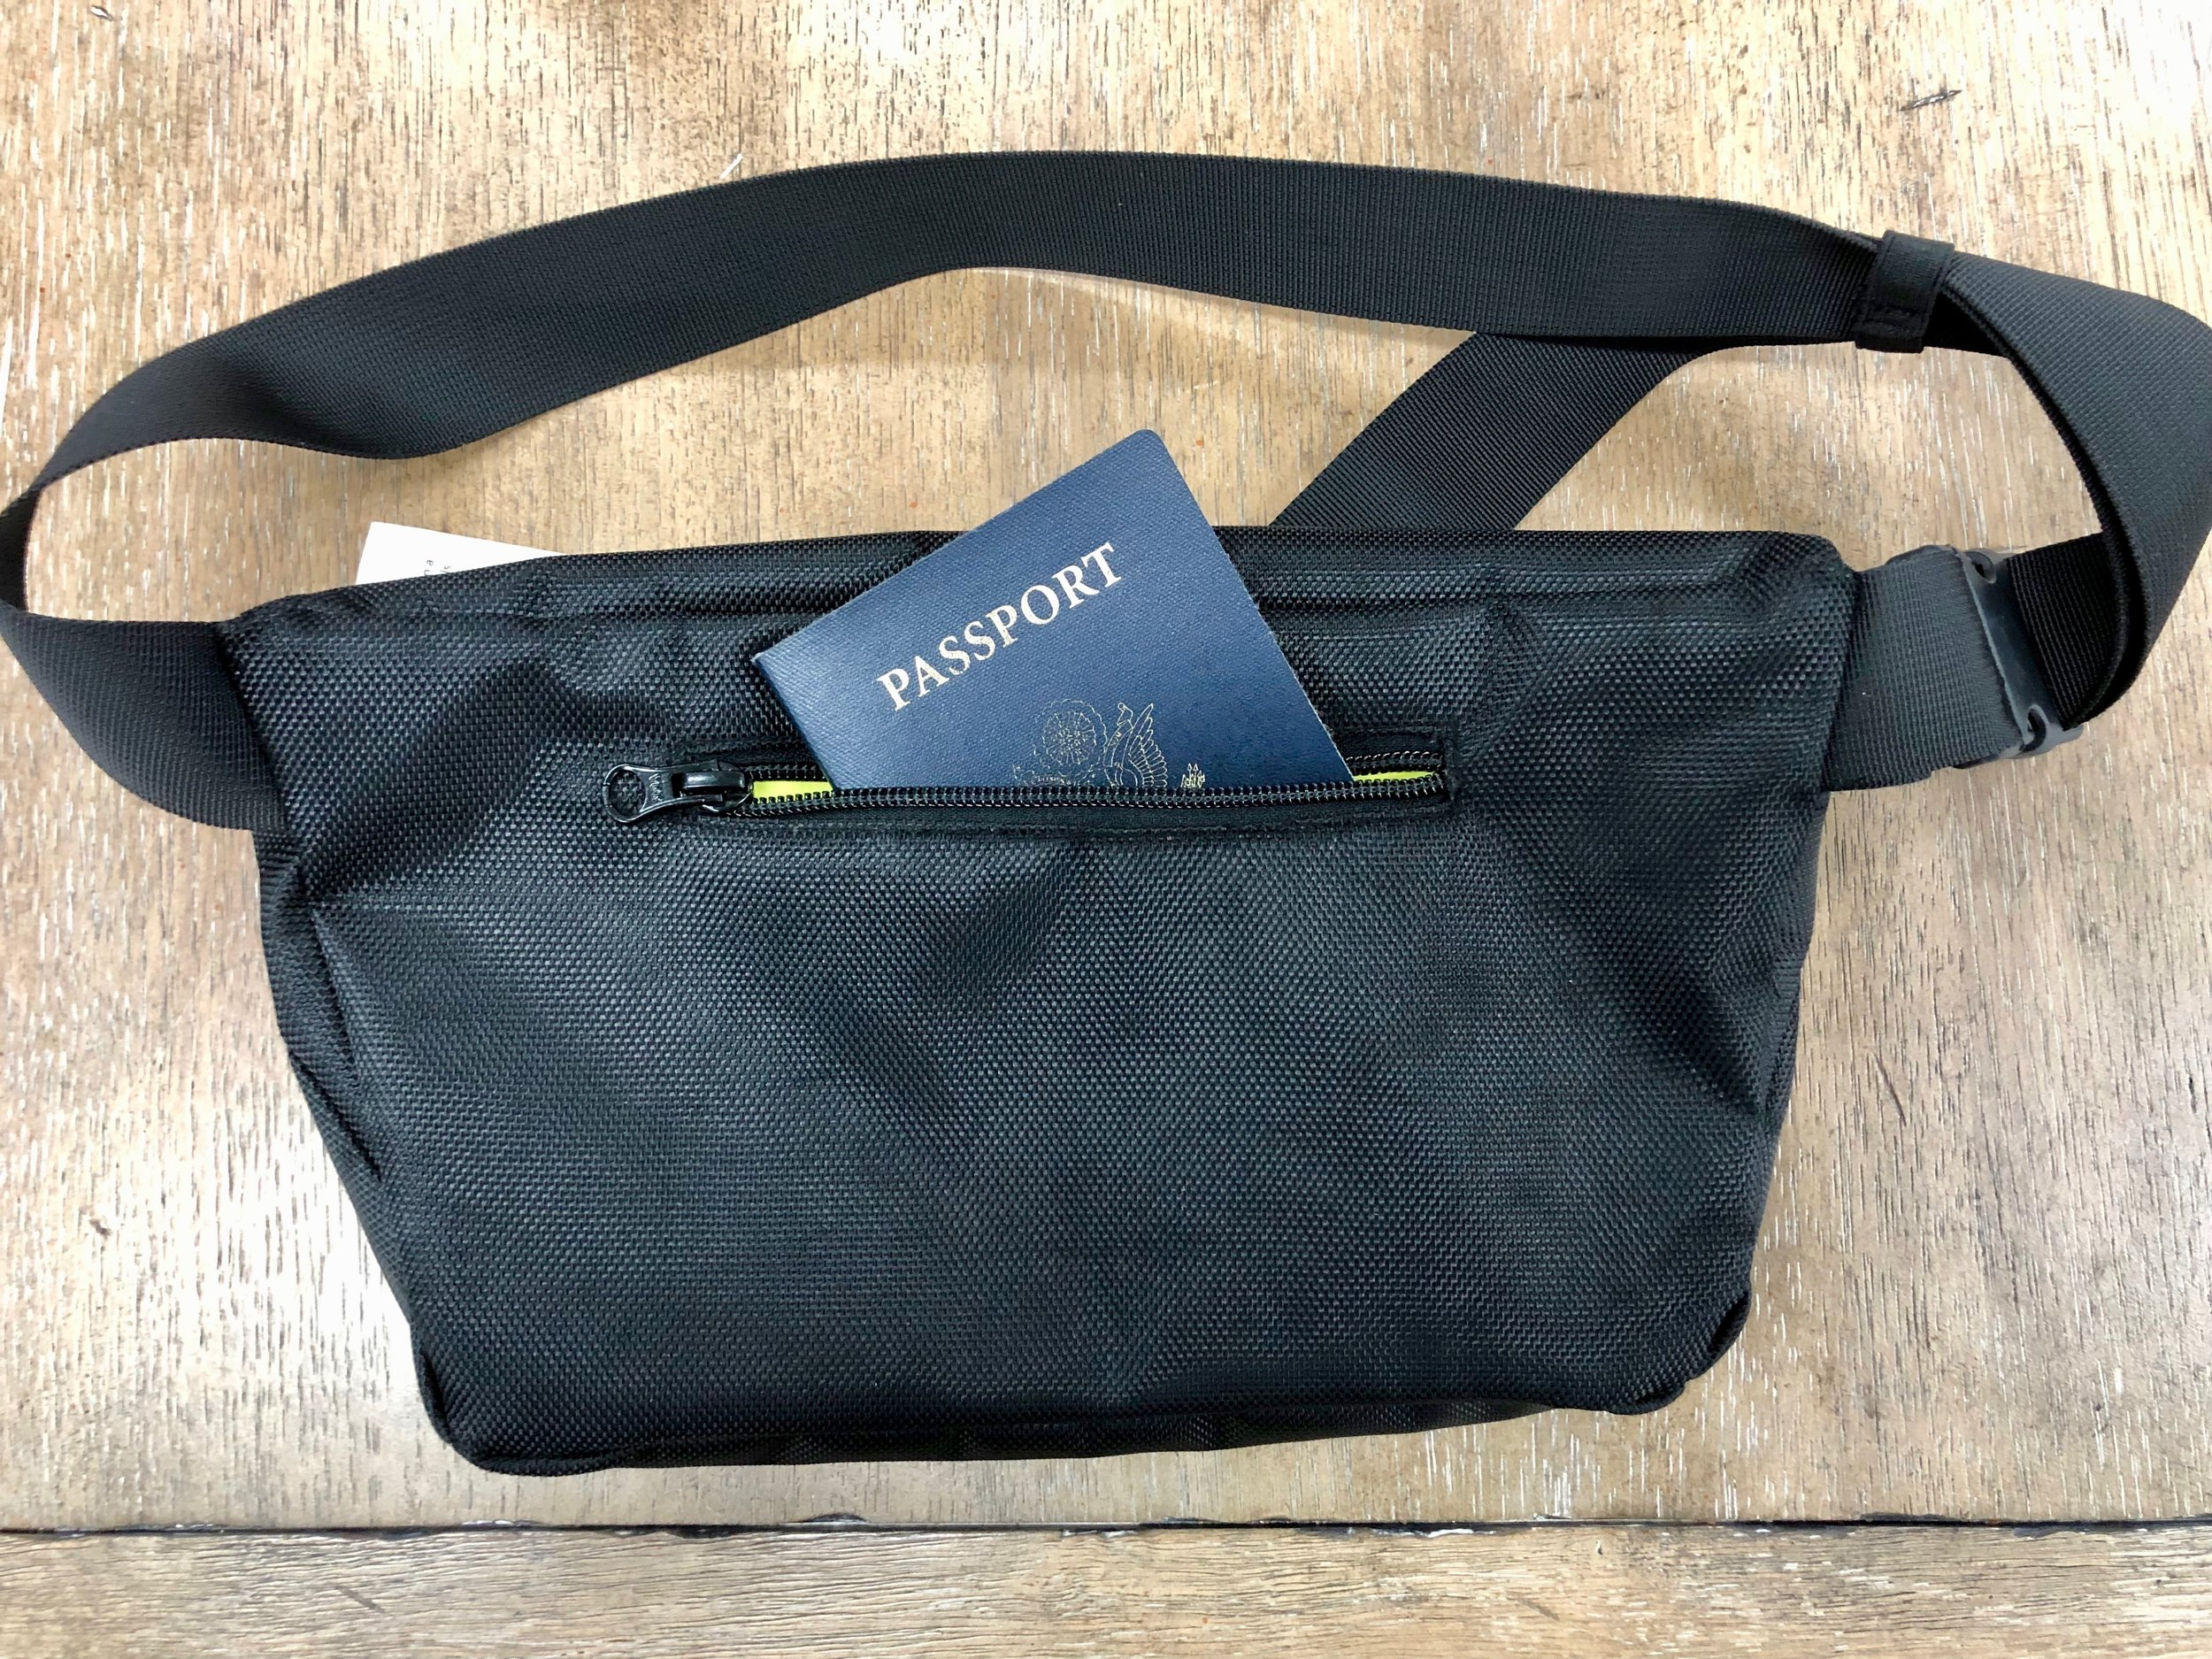 We almost missed this secret pocket. It's perfect for a passport and it's on the back side of the bag, close to the body.